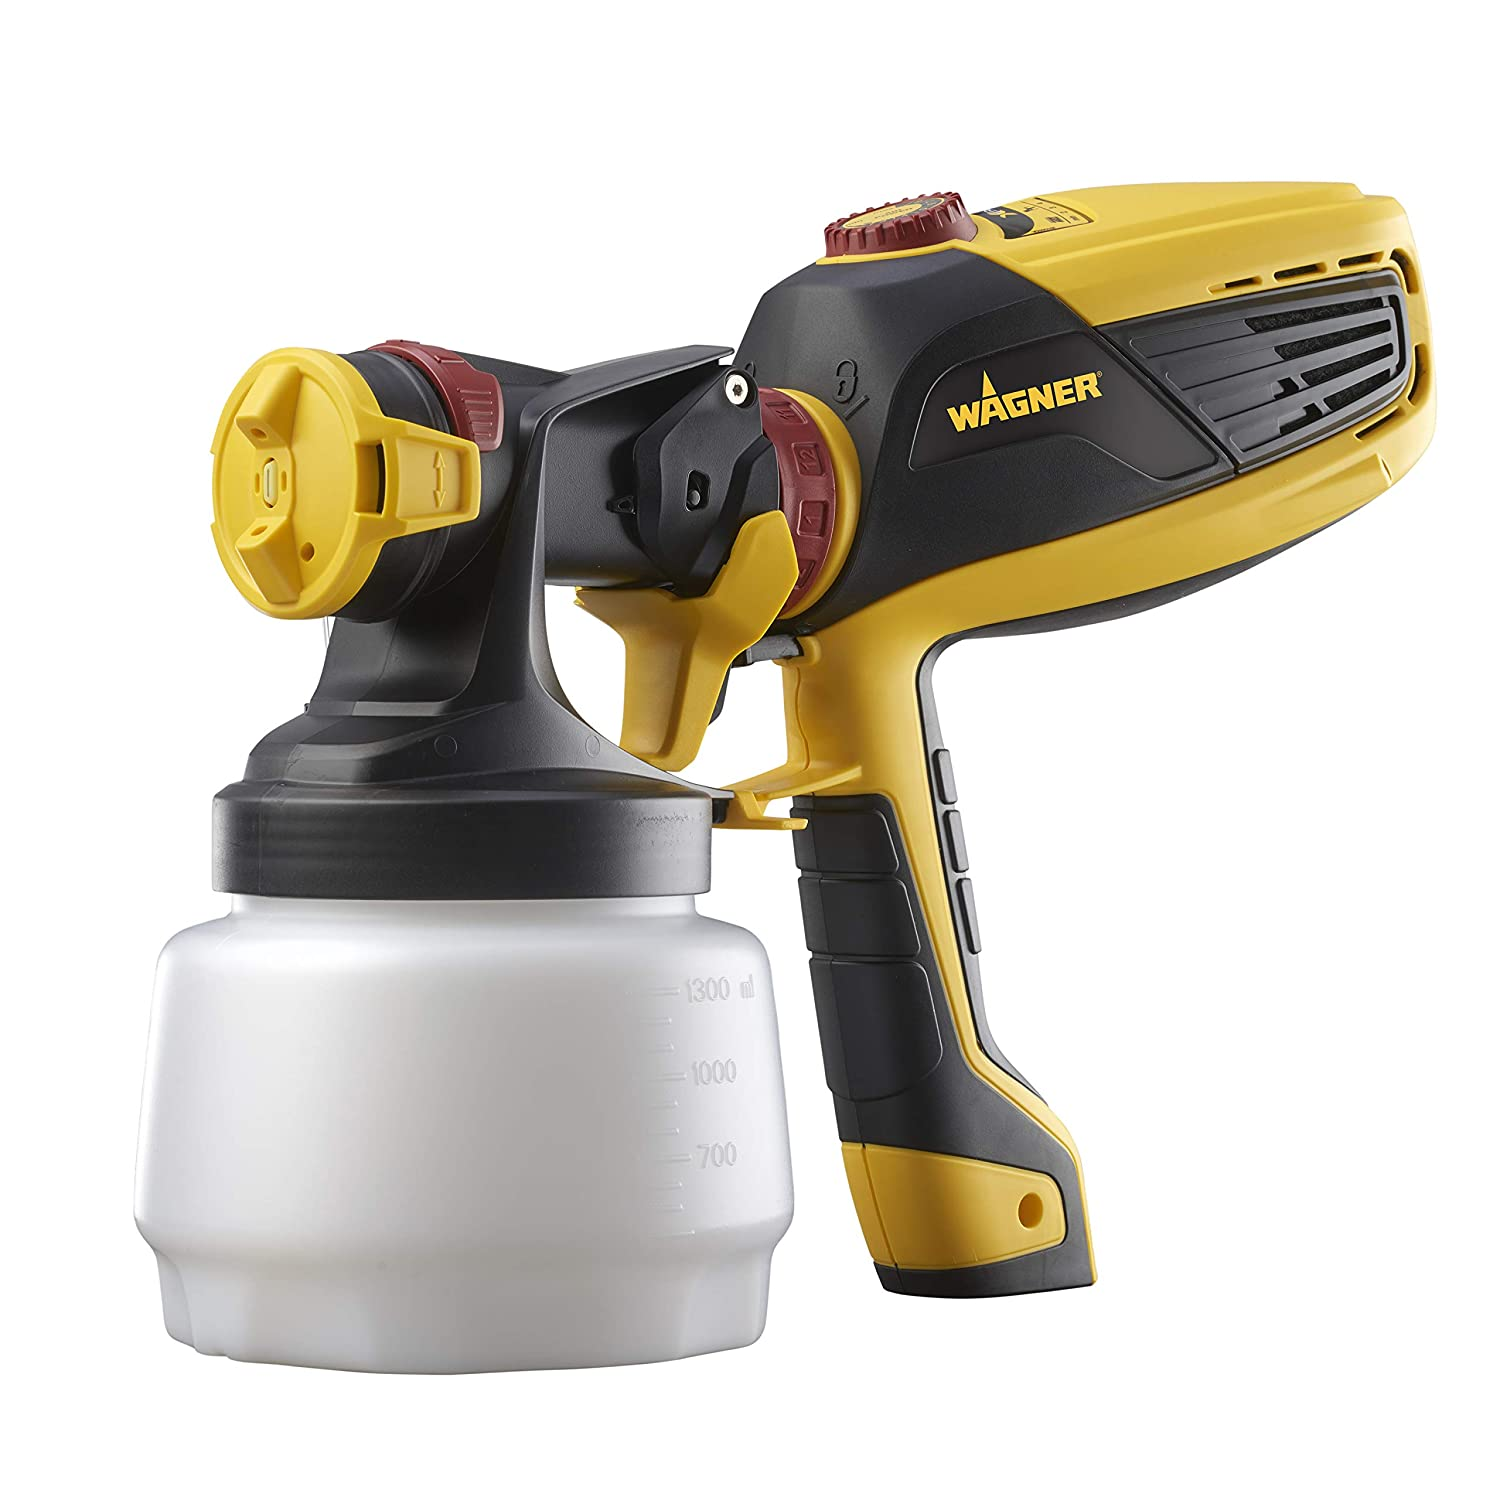 Wagner Spraytech Handheld Paint Sprayer